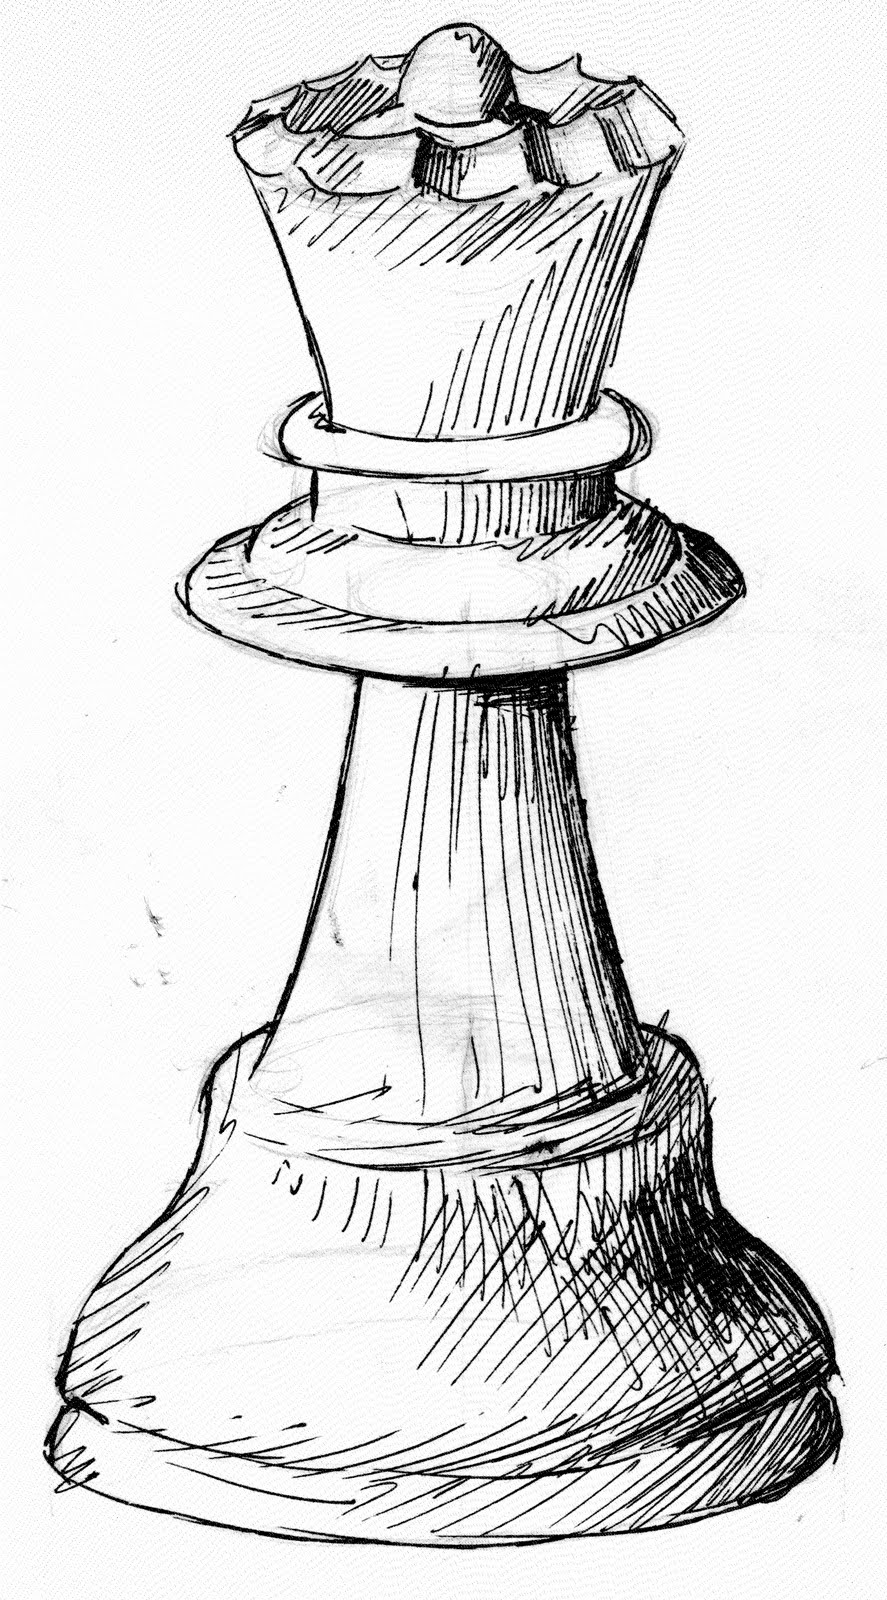 How To Draw Chess Pieces